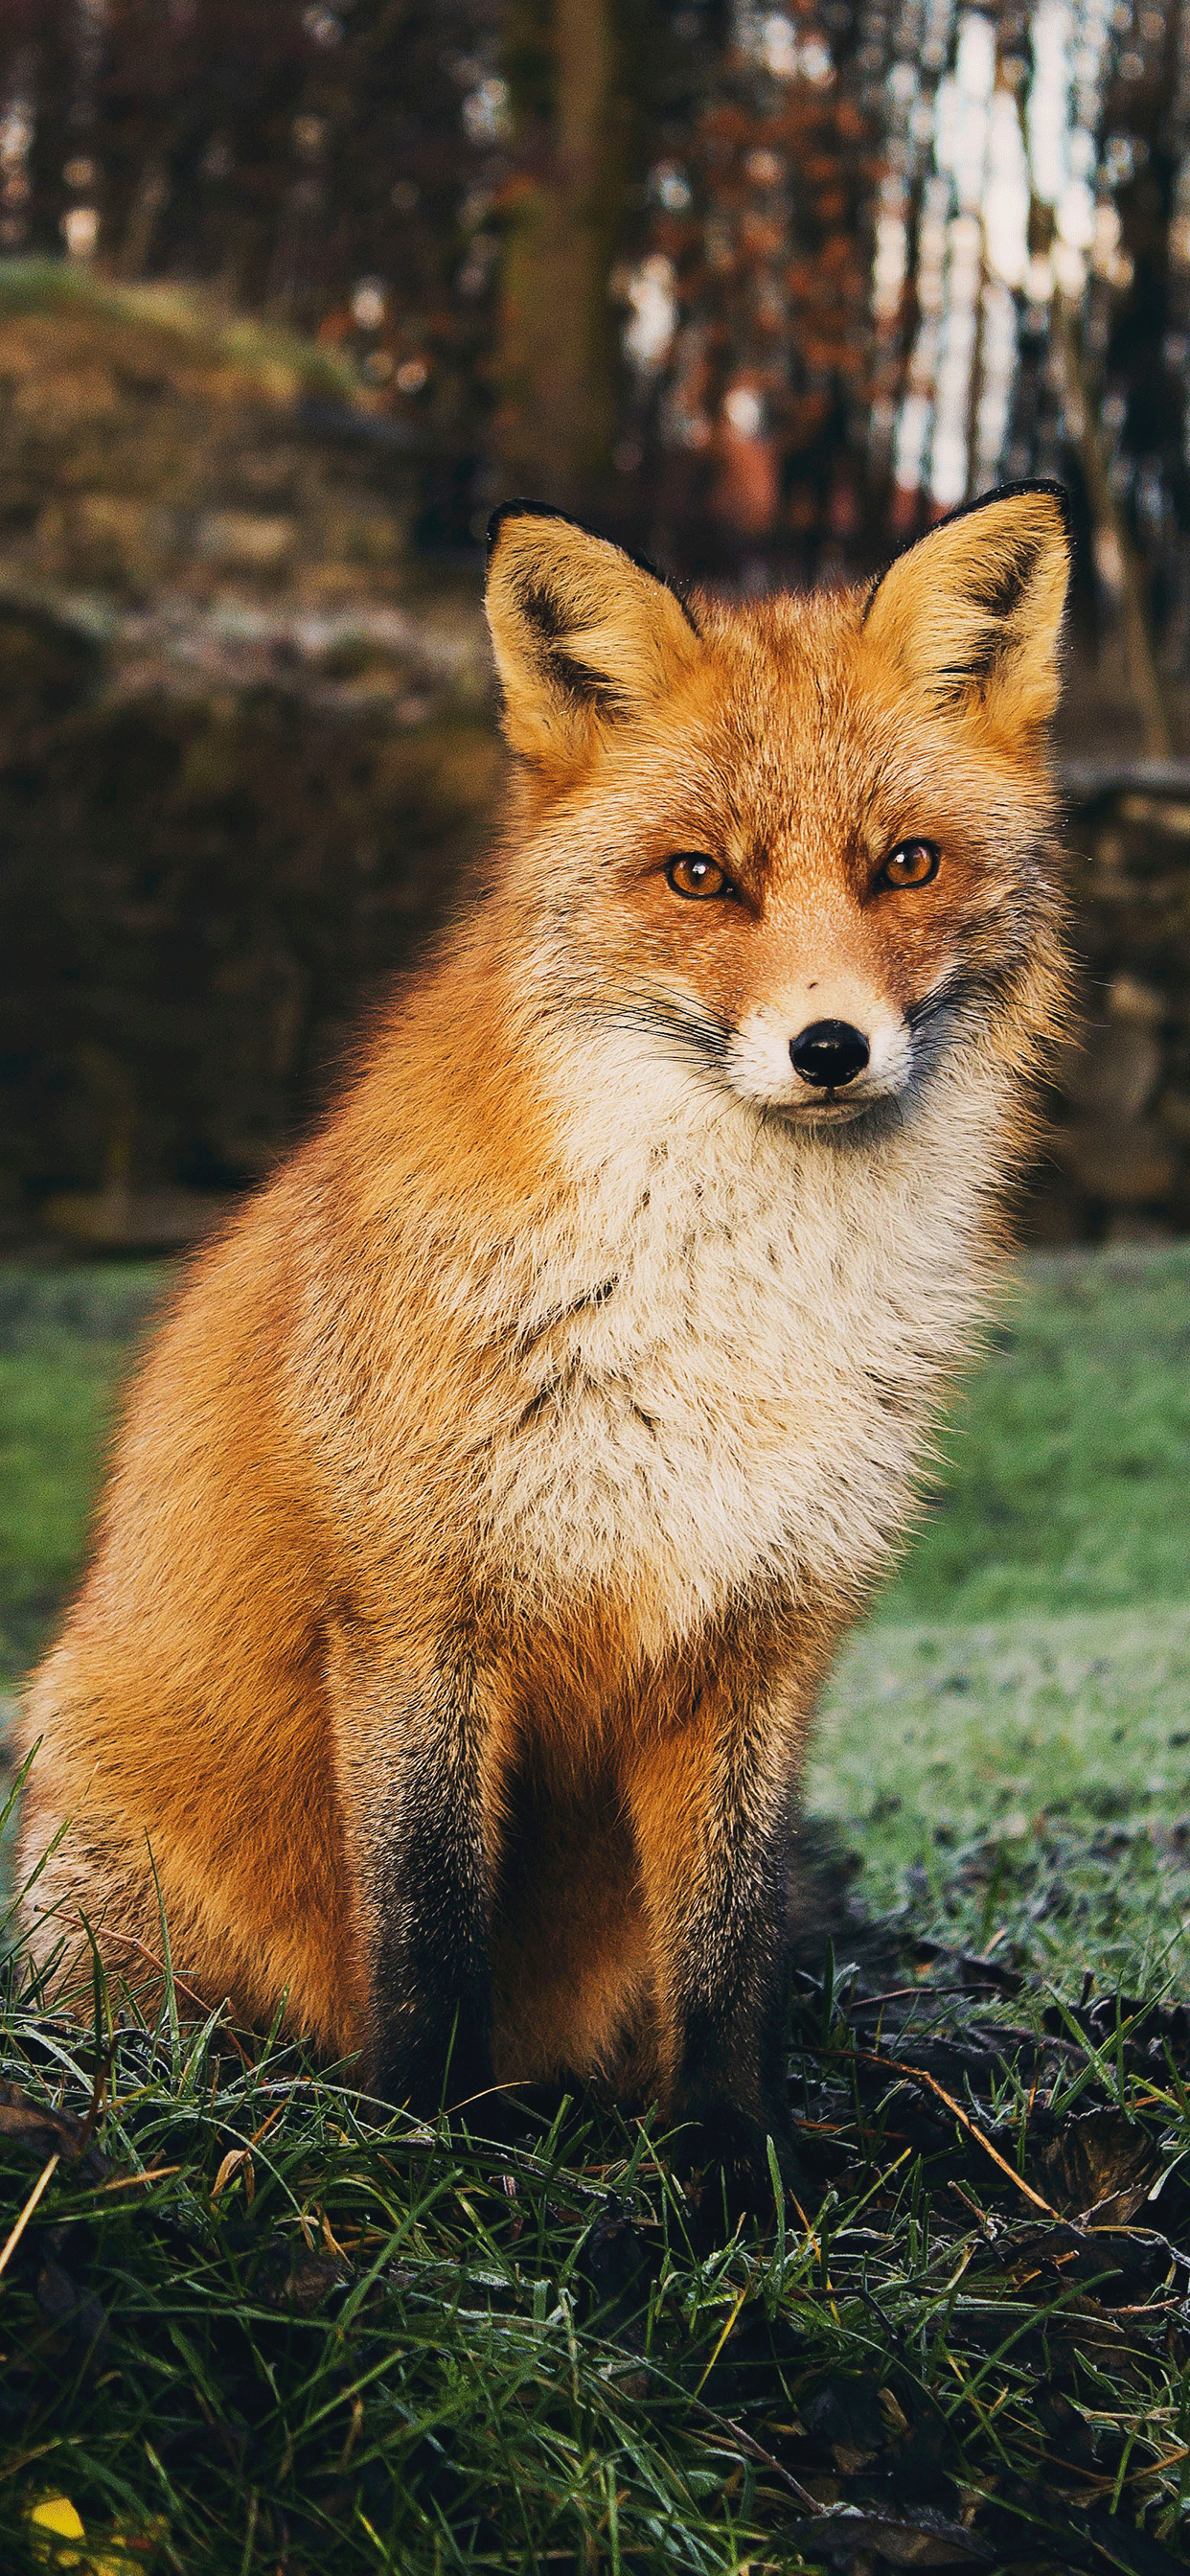 iPhone wallpaper fox norway Fox